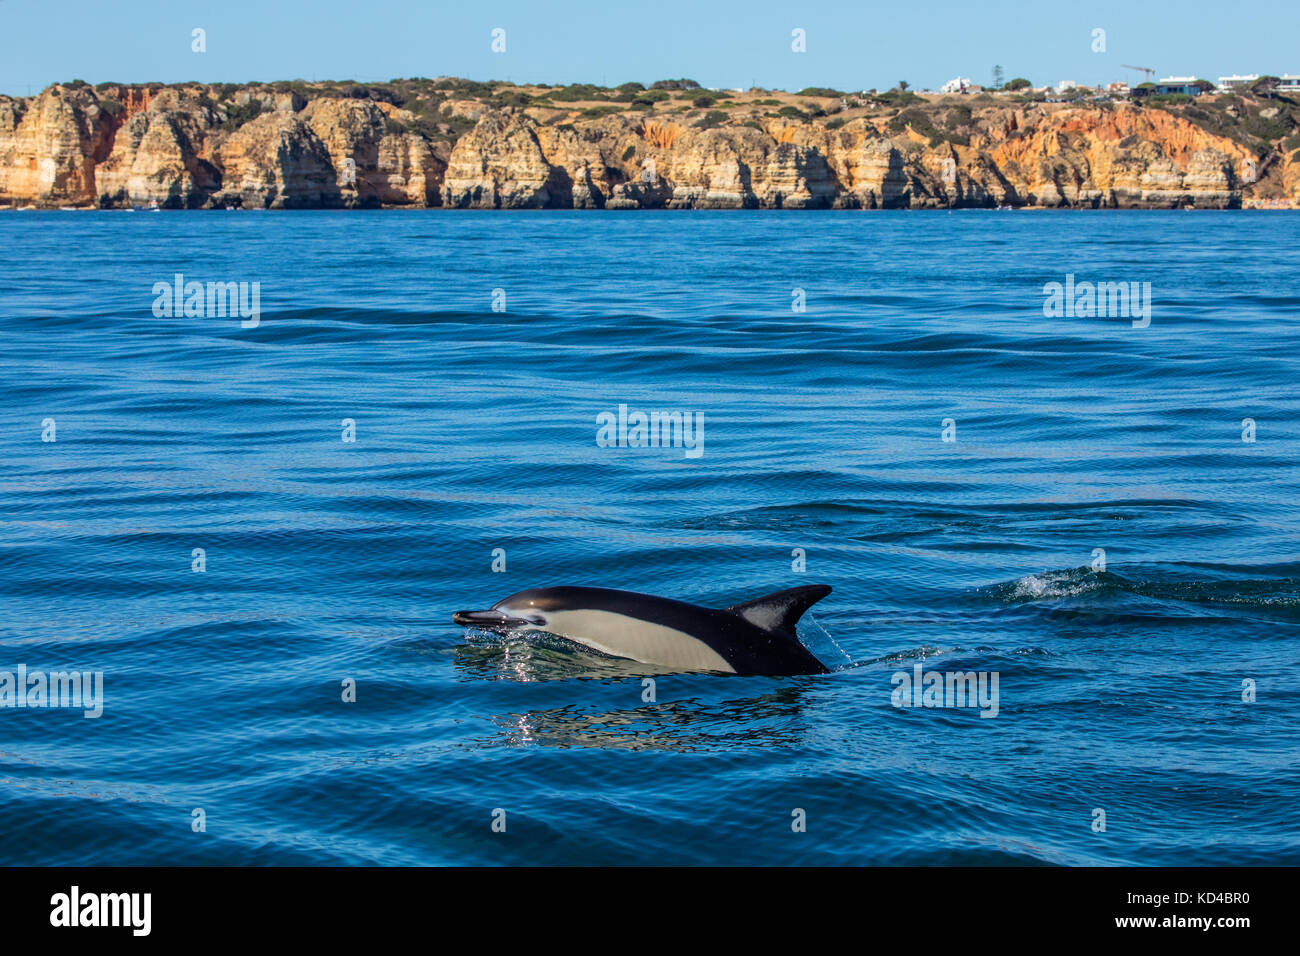 A Dolphin swimming in the Algarve, Portugal. - Stock Image